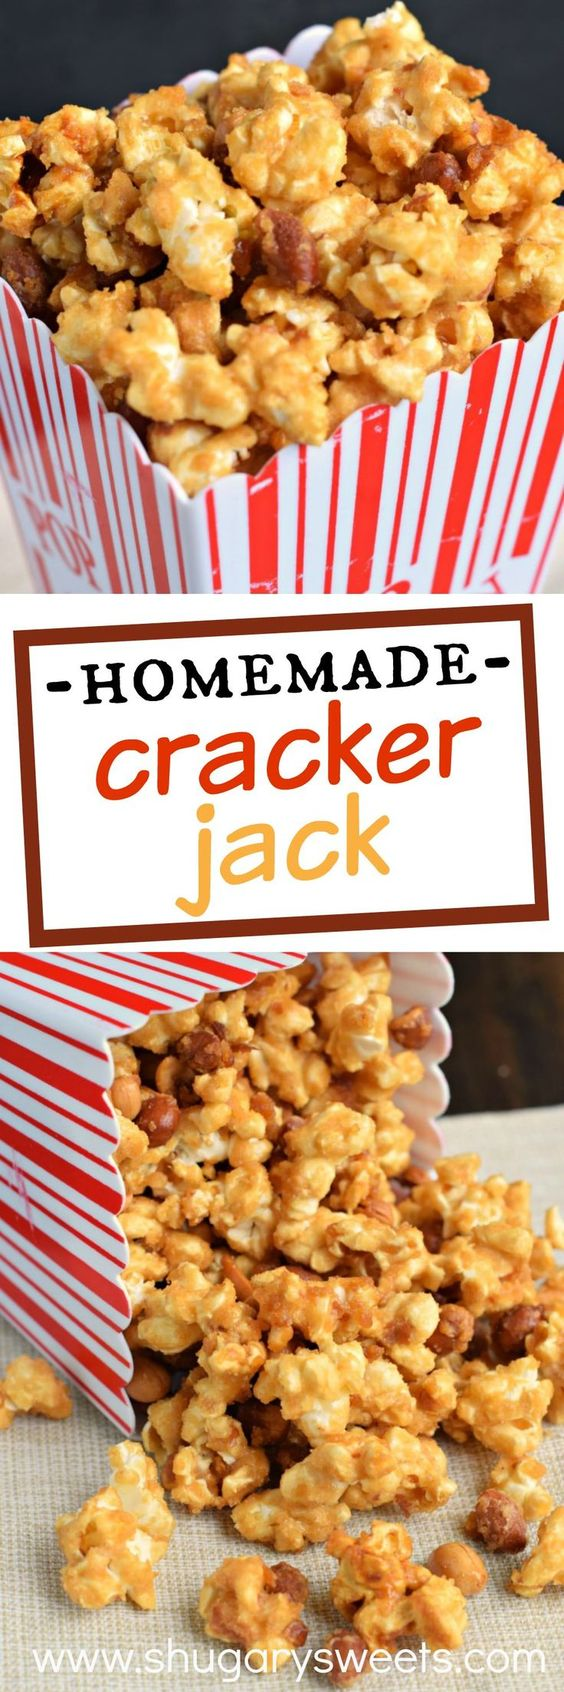 Making Homemade Cracker Jack popcorn is super easy and delicious ...